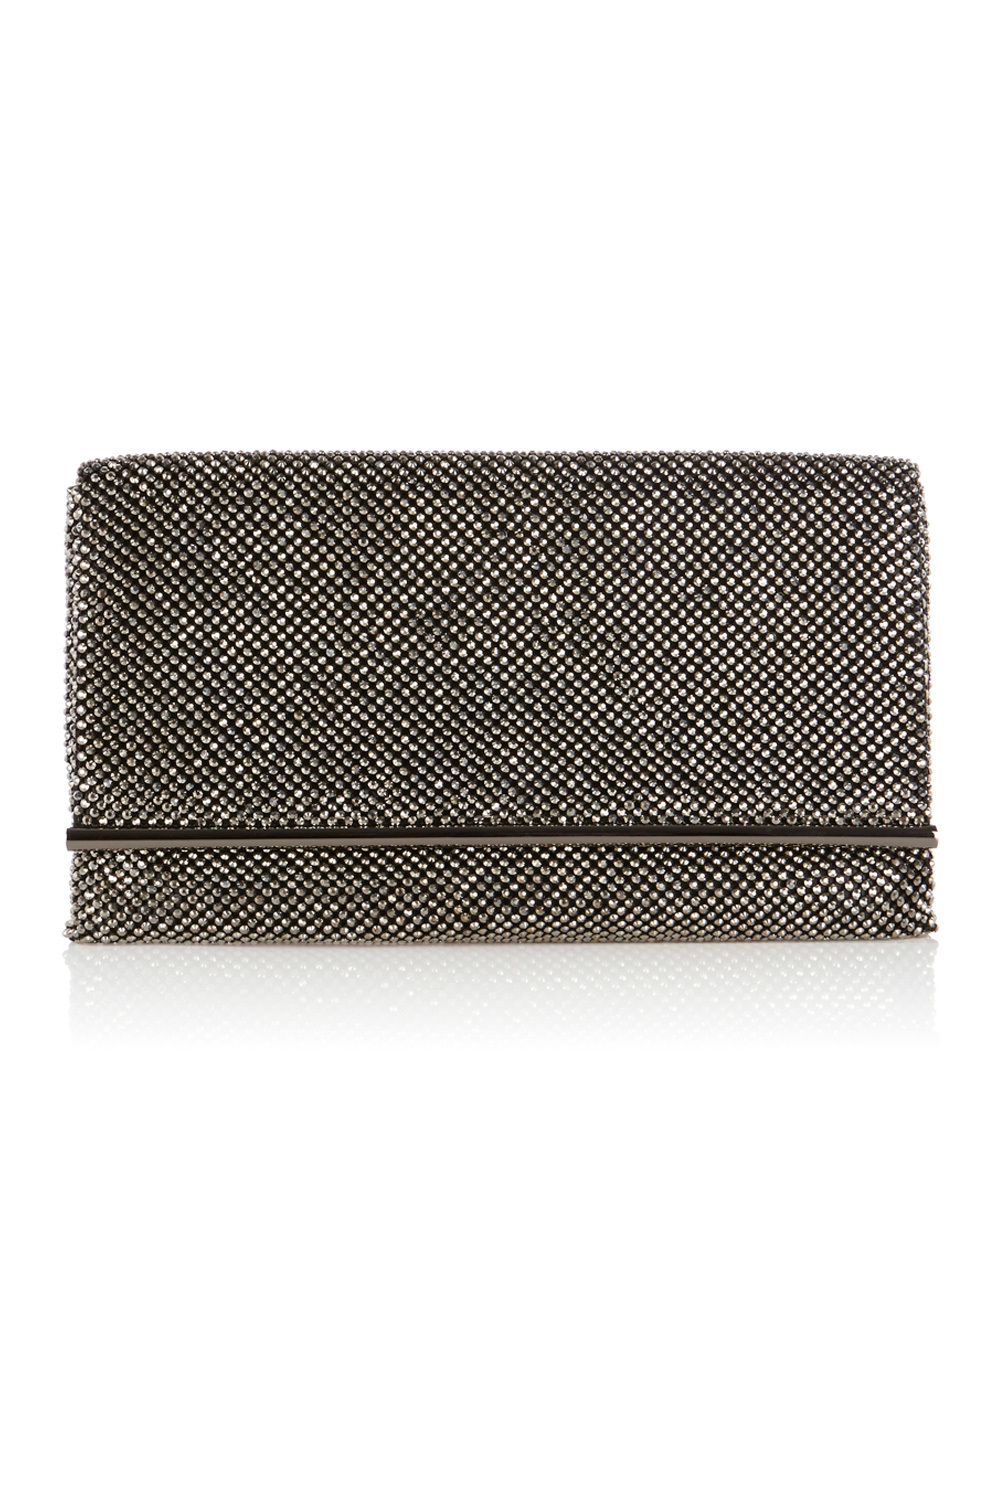 Blair Sparkle Bag - predominant colour: silver; occasions: evening, occasion; type of pattern: standard; style: clutch; length: hand carry; size: small; material: fabric; pattern: plain; finish: metallic; season: a/w 2016; wardrobe: event